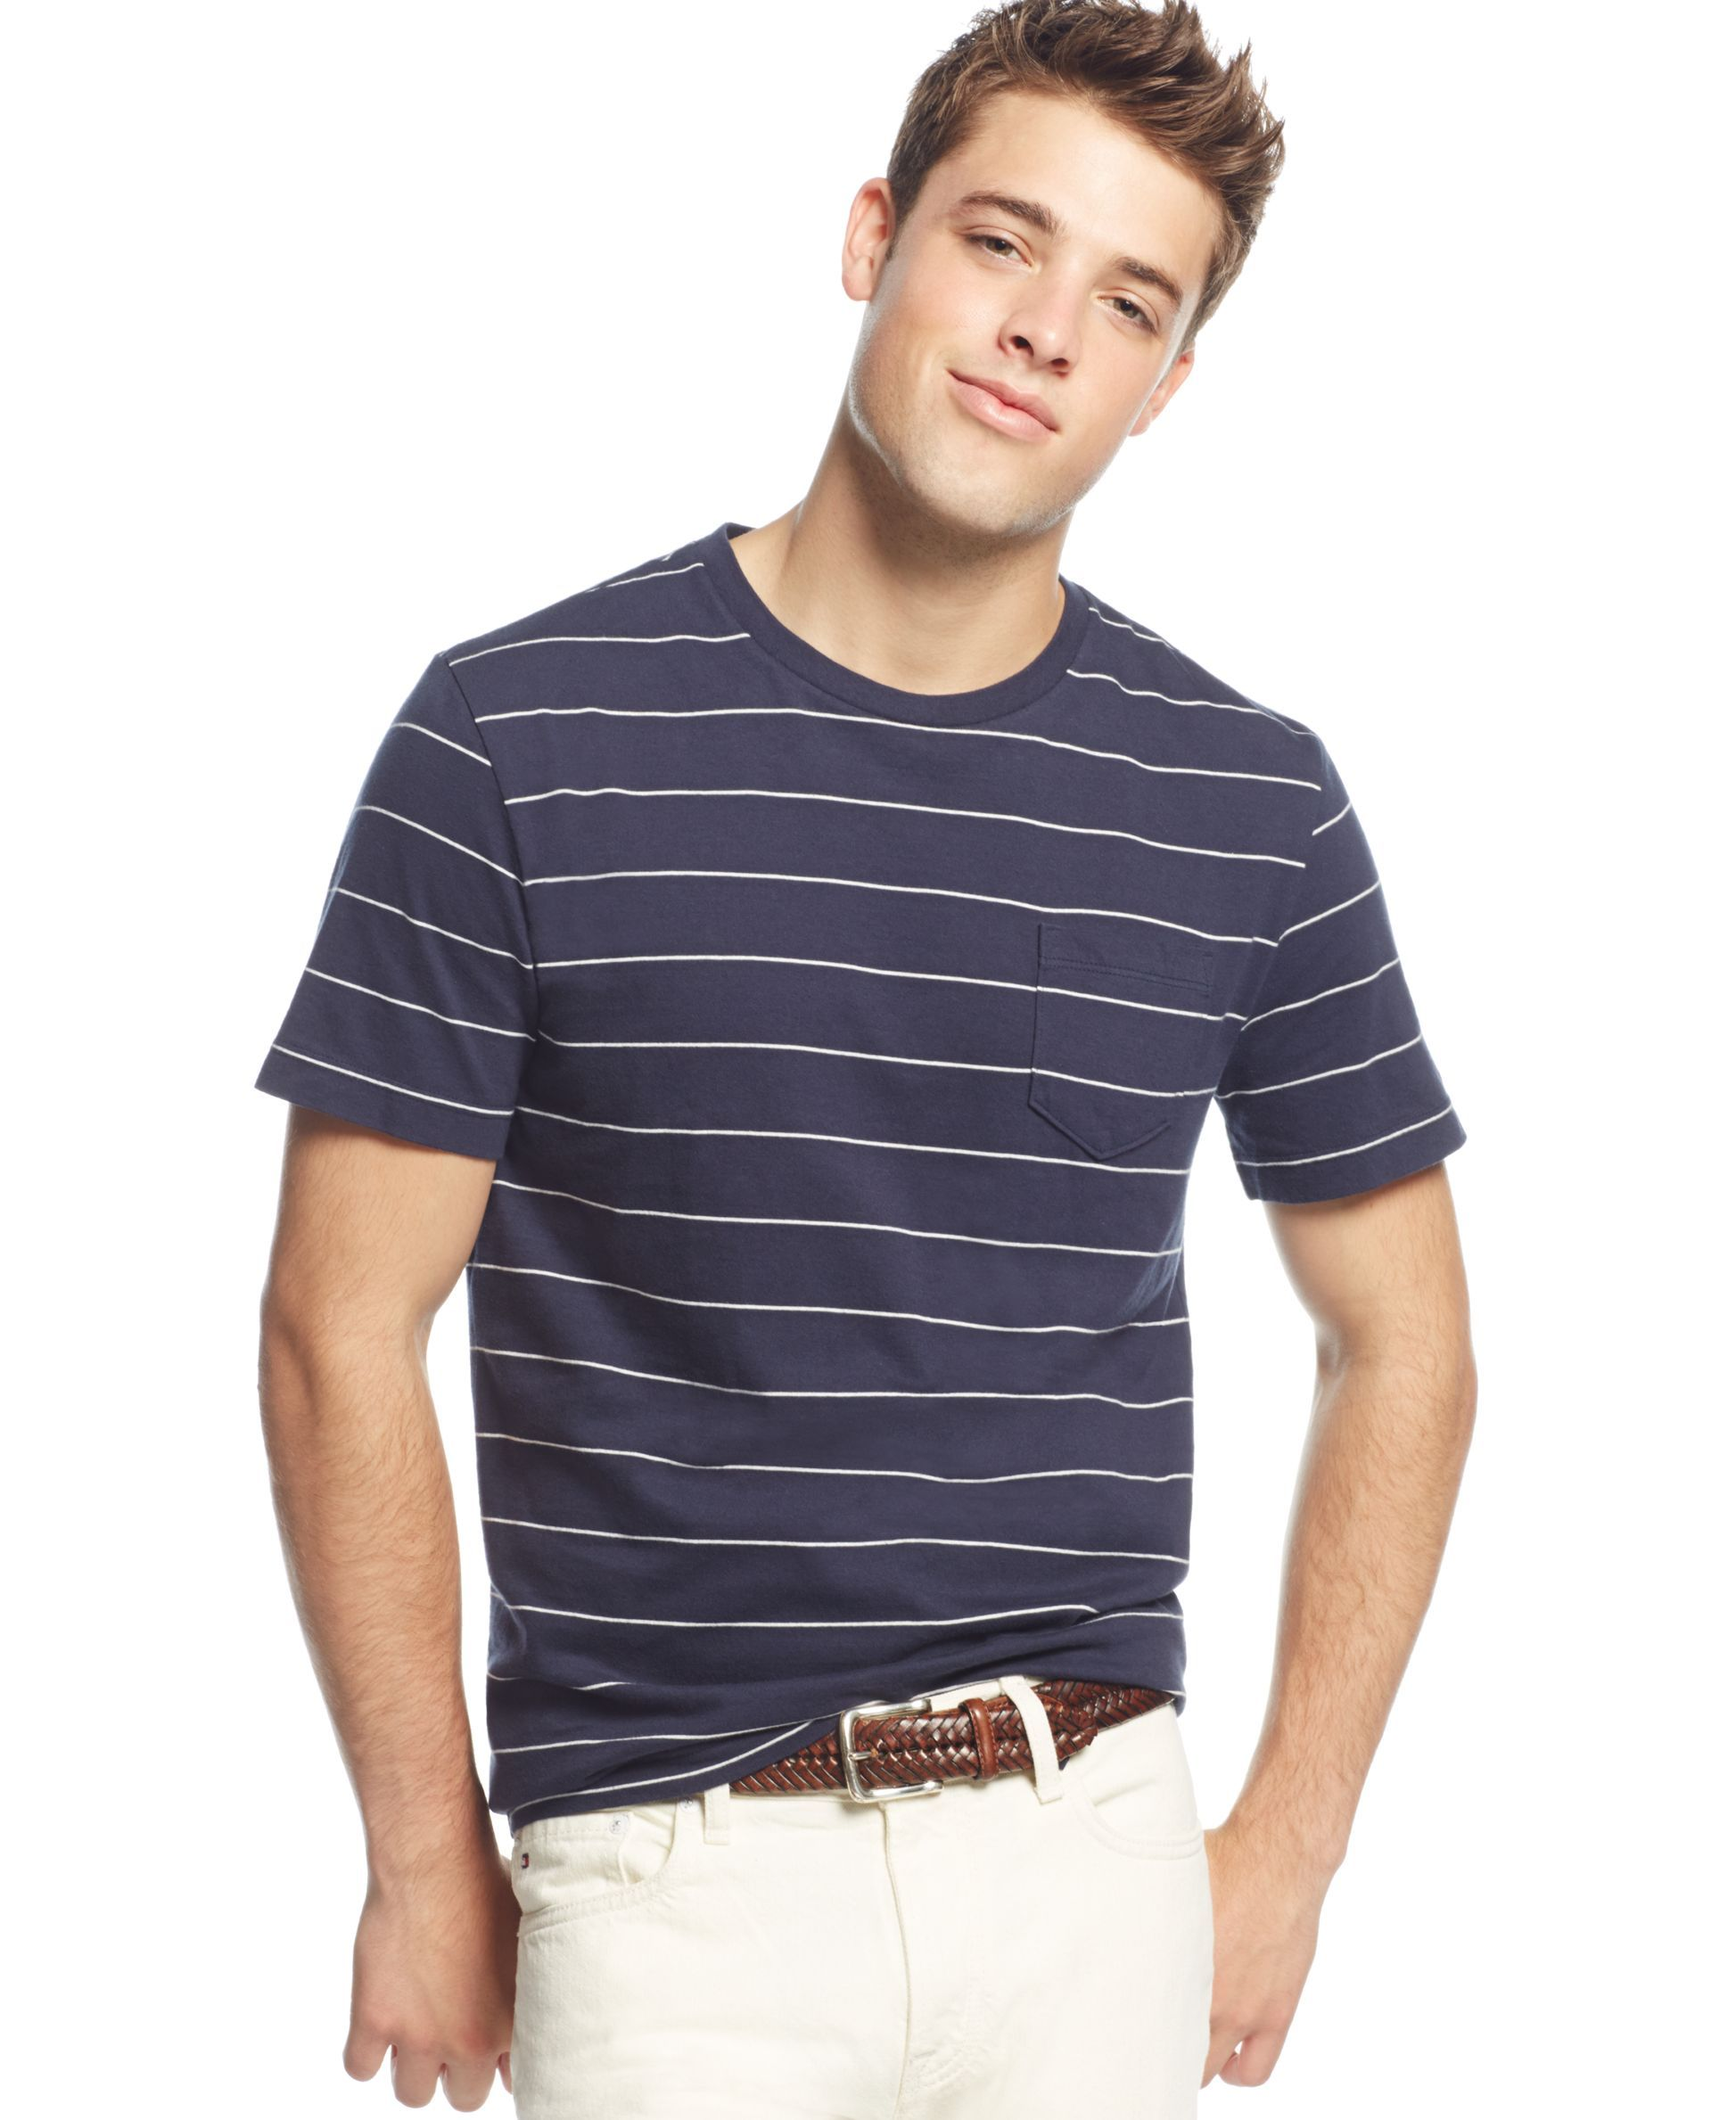 Tommy Hilfiger Freeman Striped Pocket T Shirt | Shirts, T